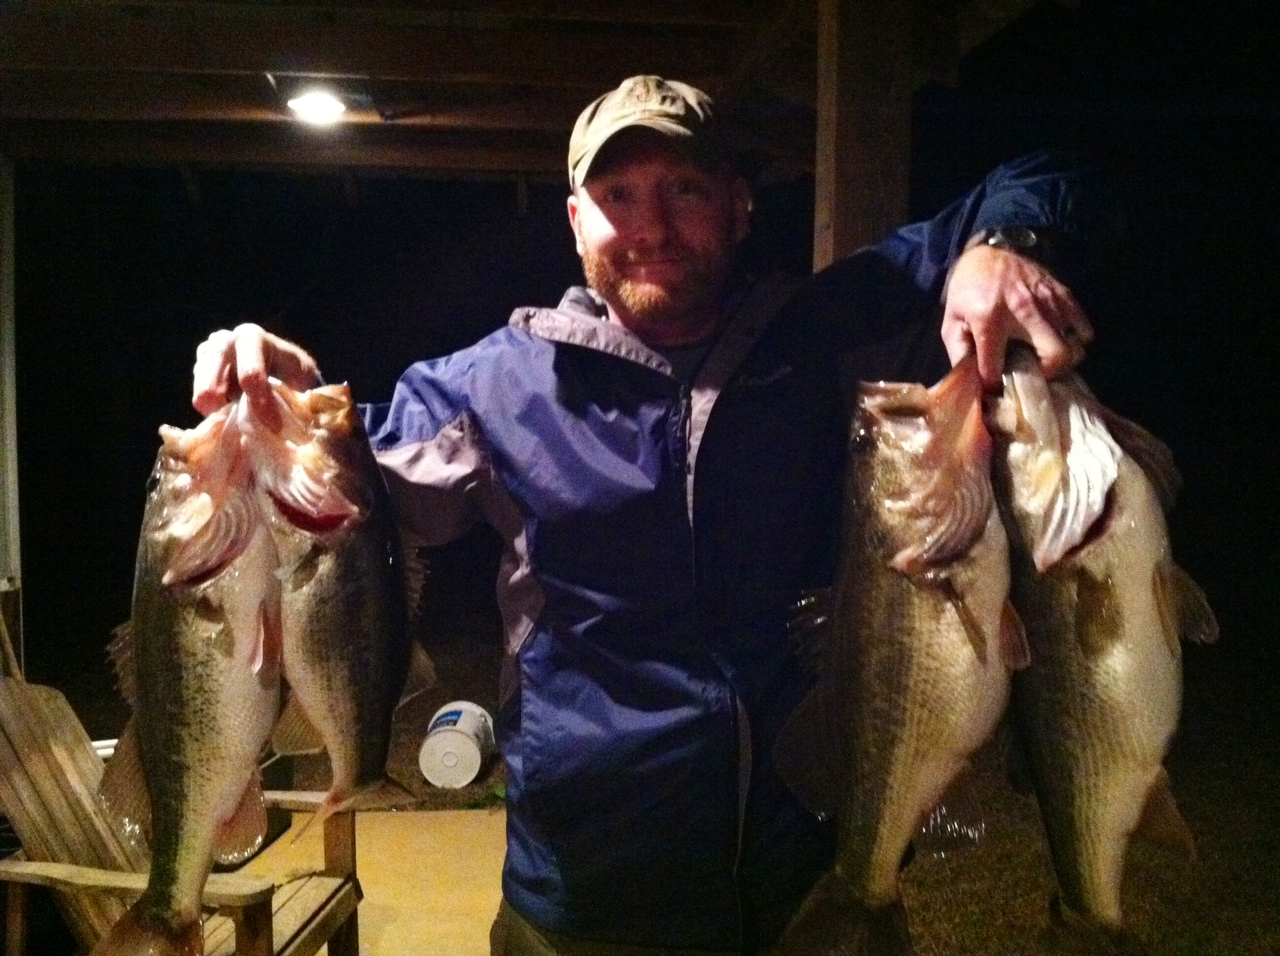 Nic Goodson Warthen Georgia  After a long, cold, windy day on the water with limited success, I